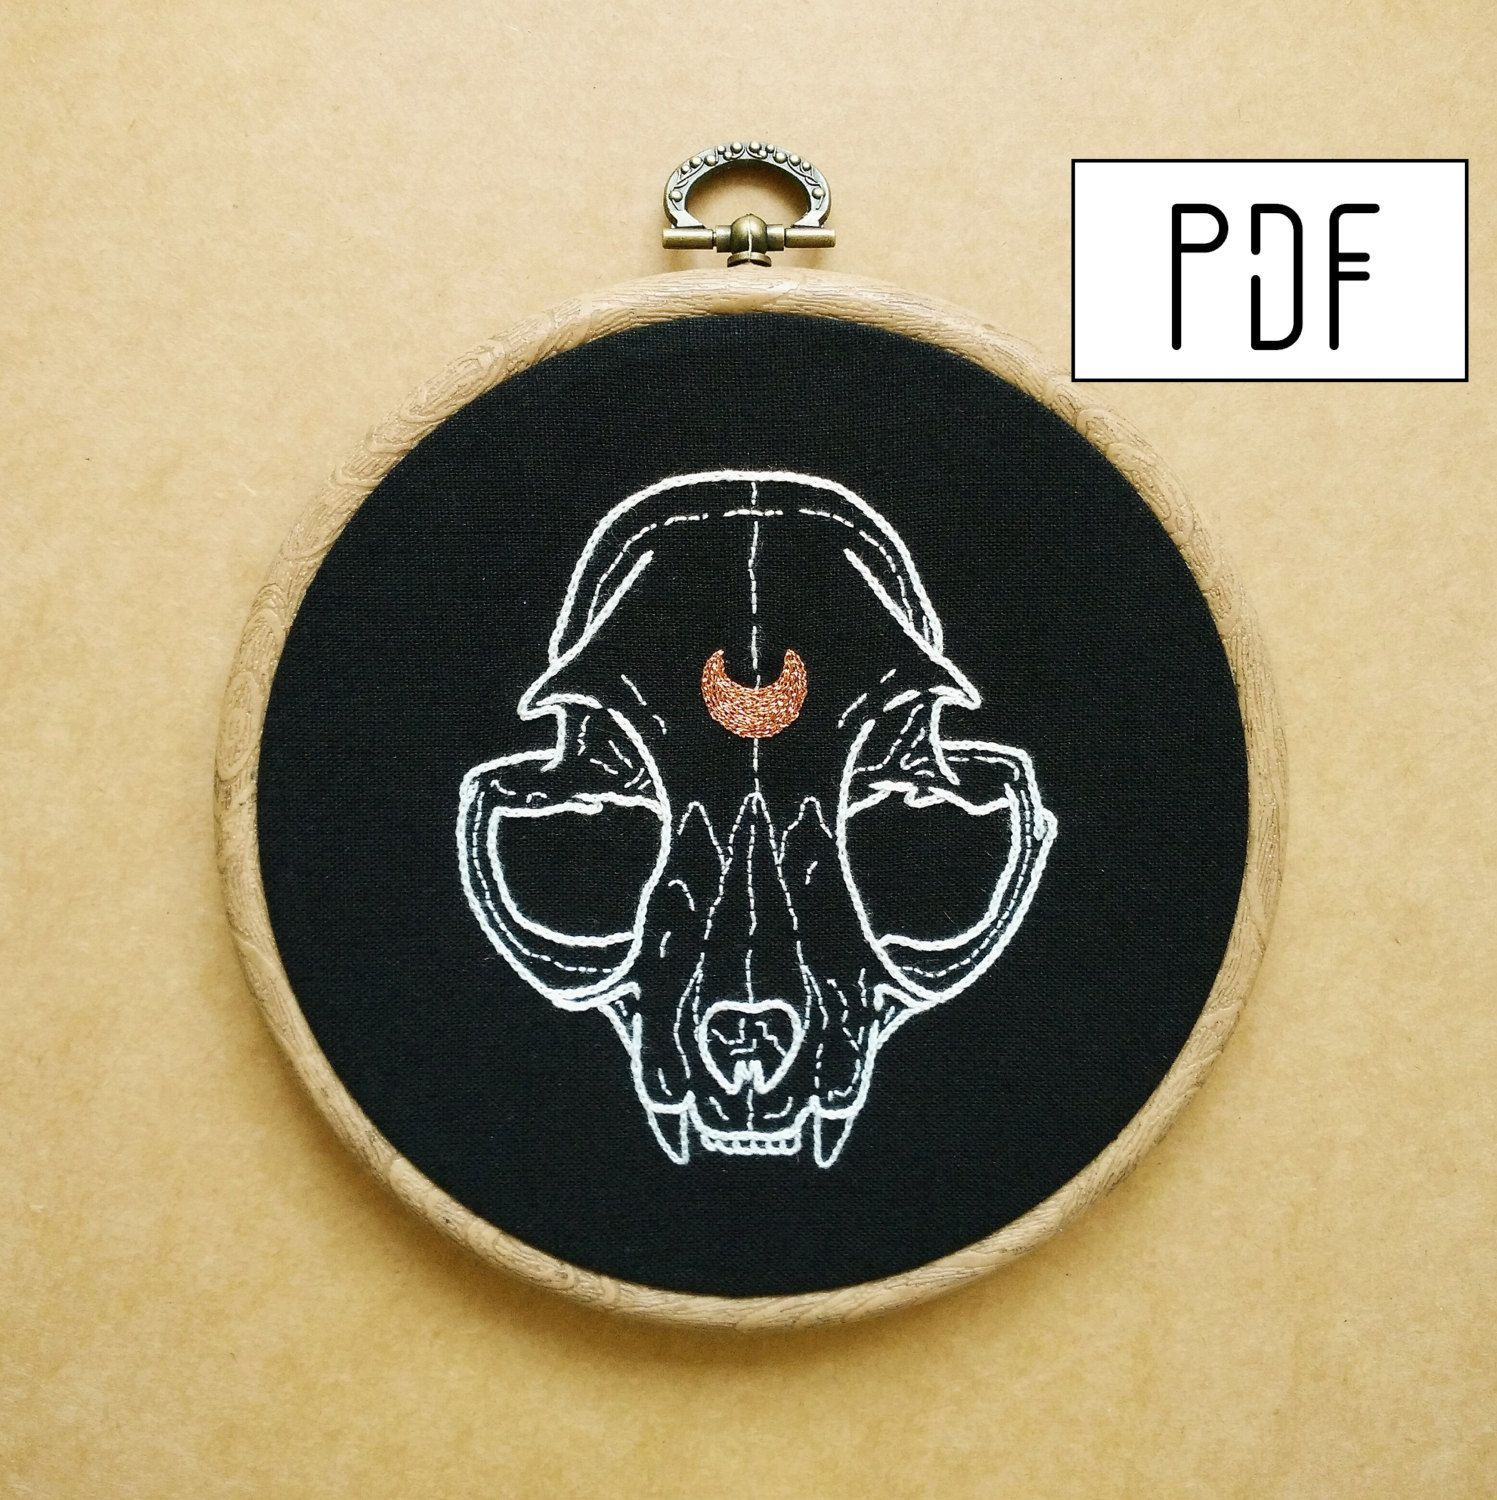 Cat Skull with Reversed Crescent Moon detail Hand Embroidery Pattern (PDF modern embroidery pattern) by ALIFERA on Etsy